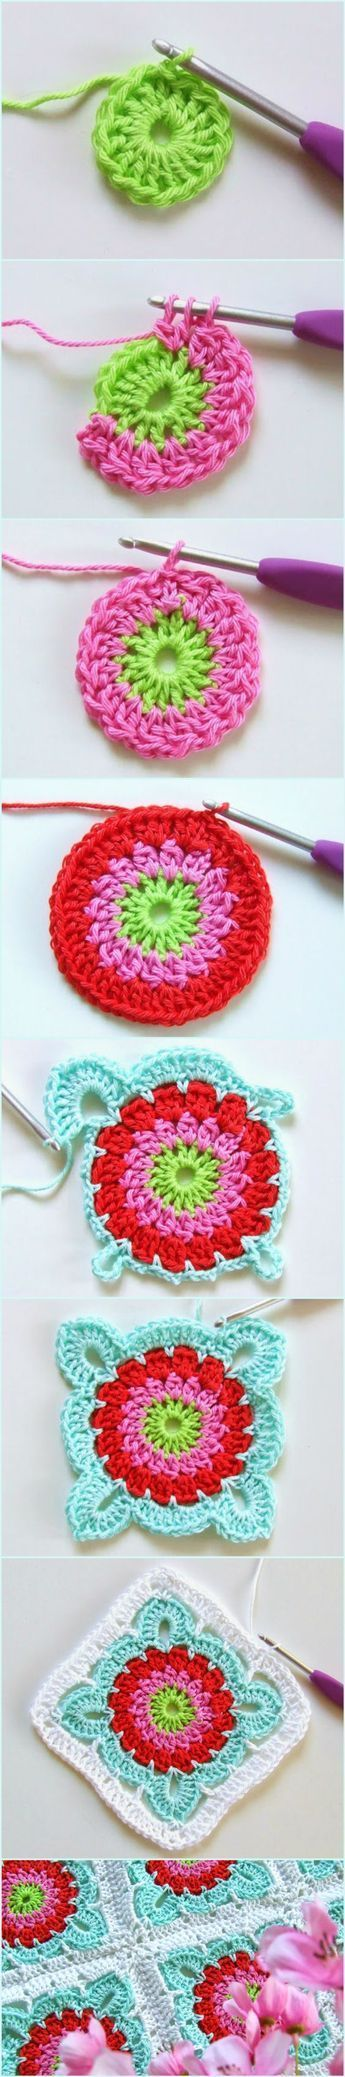 How To Crochet Large Flower Granny Square Blanket Tutorial They Are